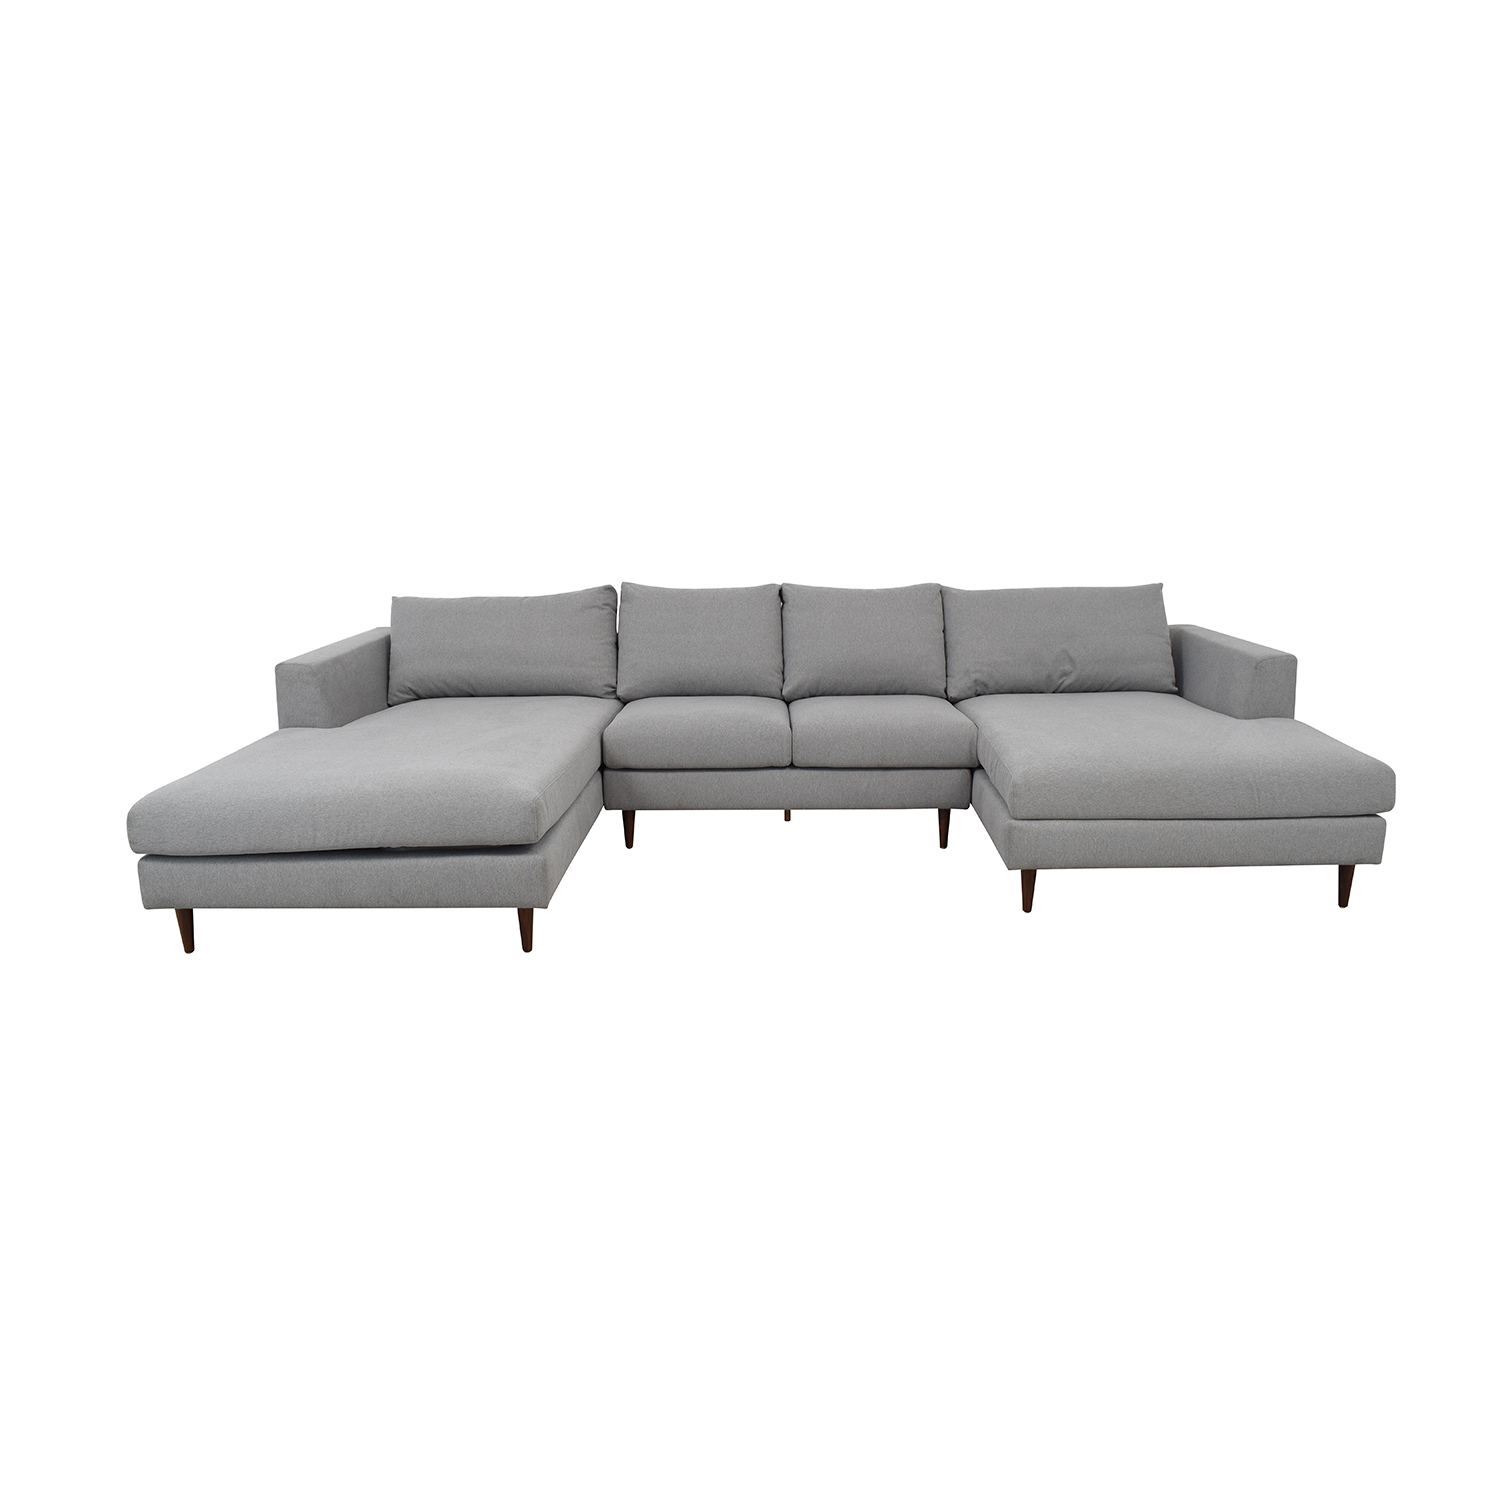 Asher Performance Felt Ash U-Shaped Double Chaise Sectional discount